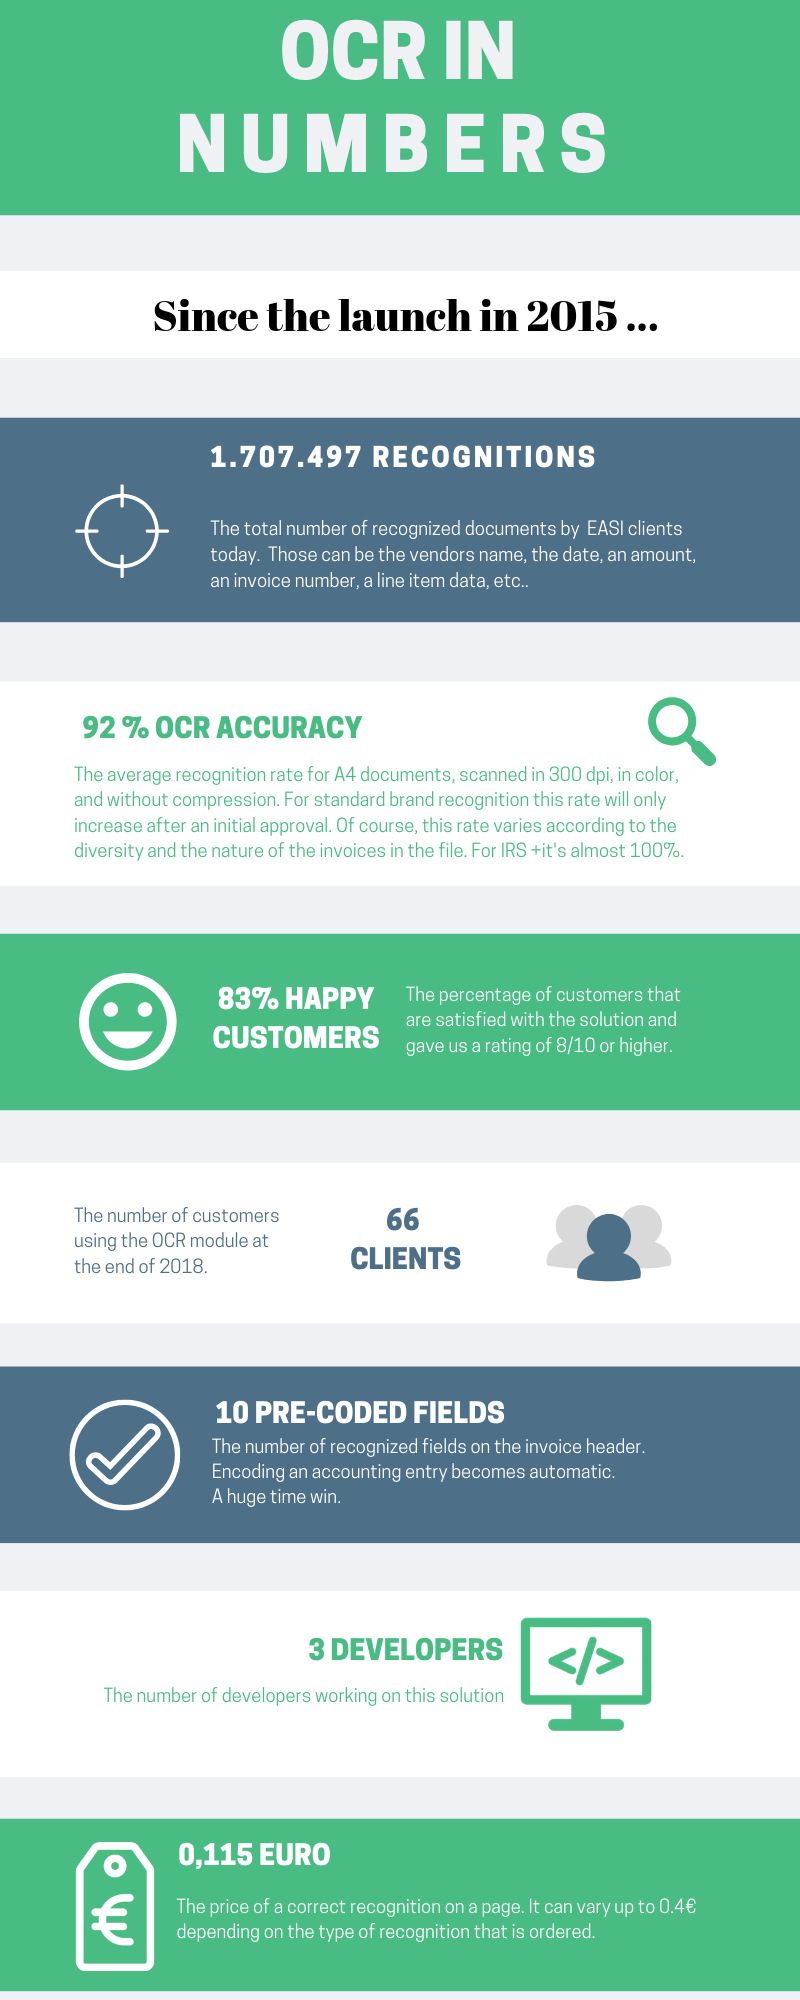 OCR in NUMBERS (1)